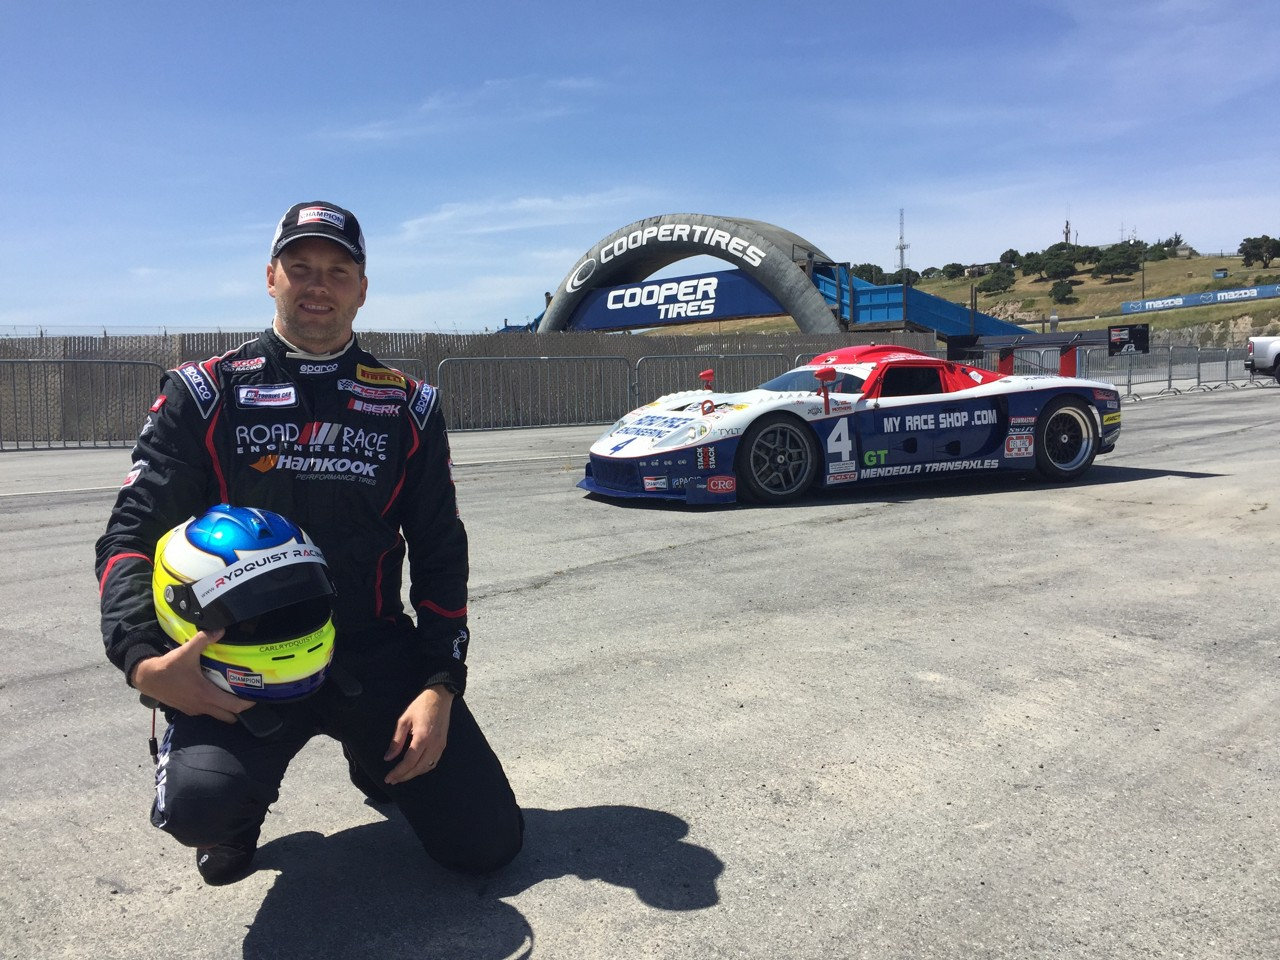 carl-rydquist-posing-with-race-car